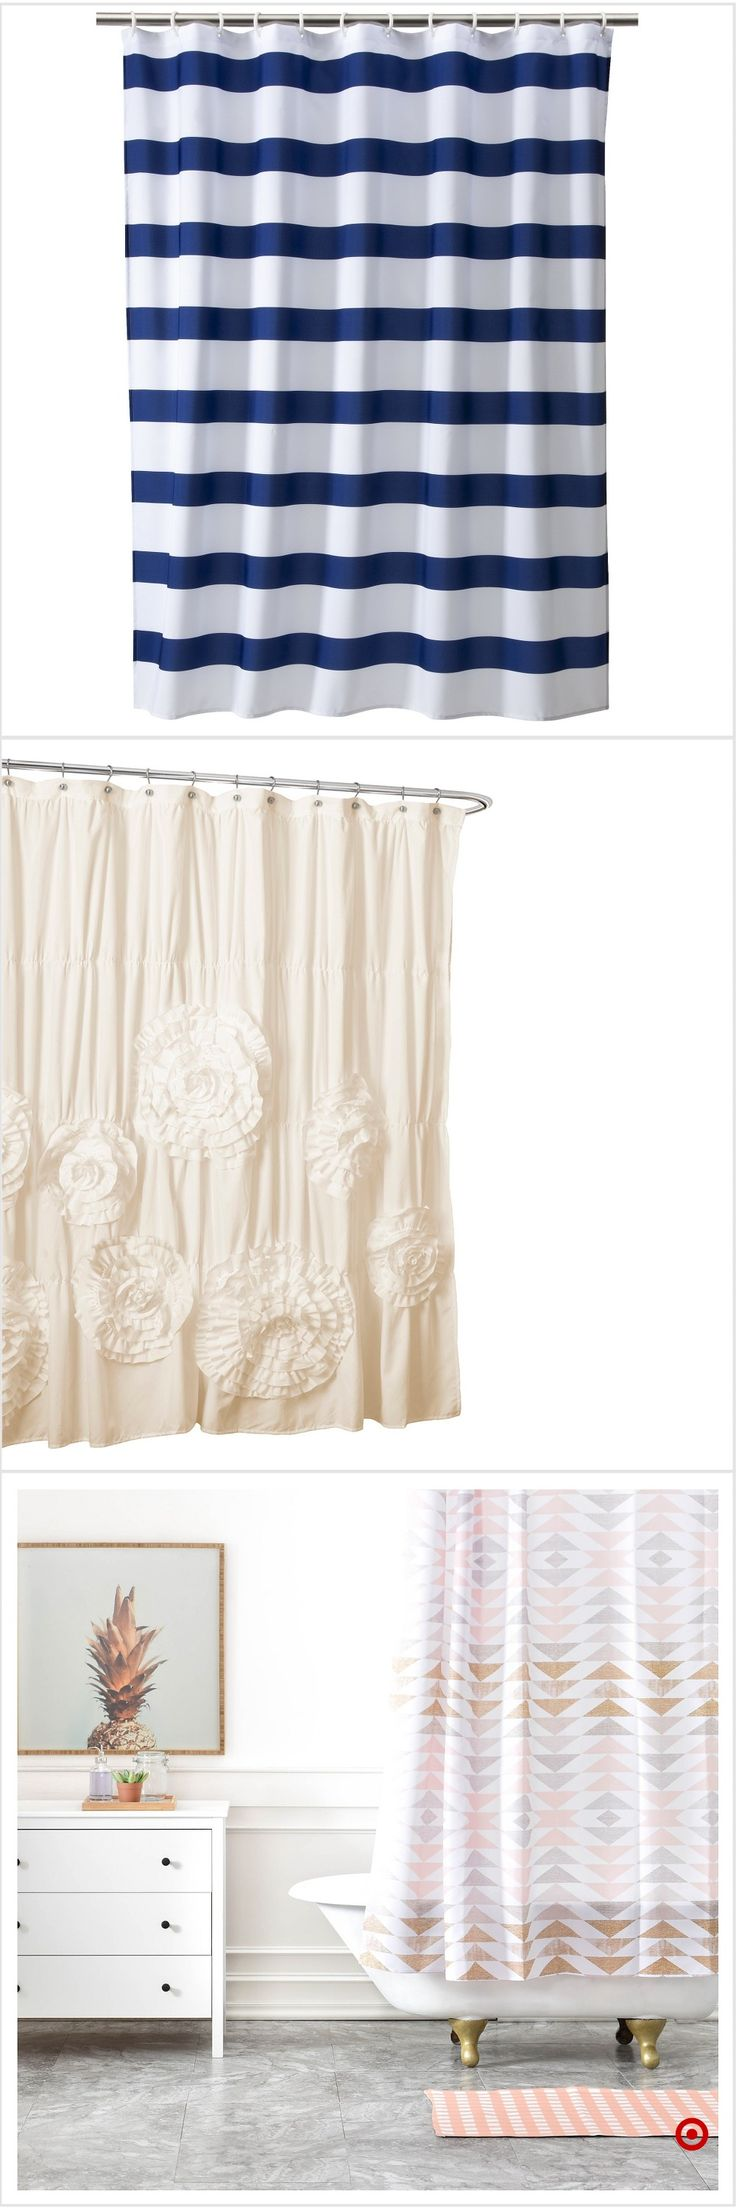 Shower curtain tracks prices - Shop Target For Shower Curtain You Will Love At Great Low Prices Free Shipping On